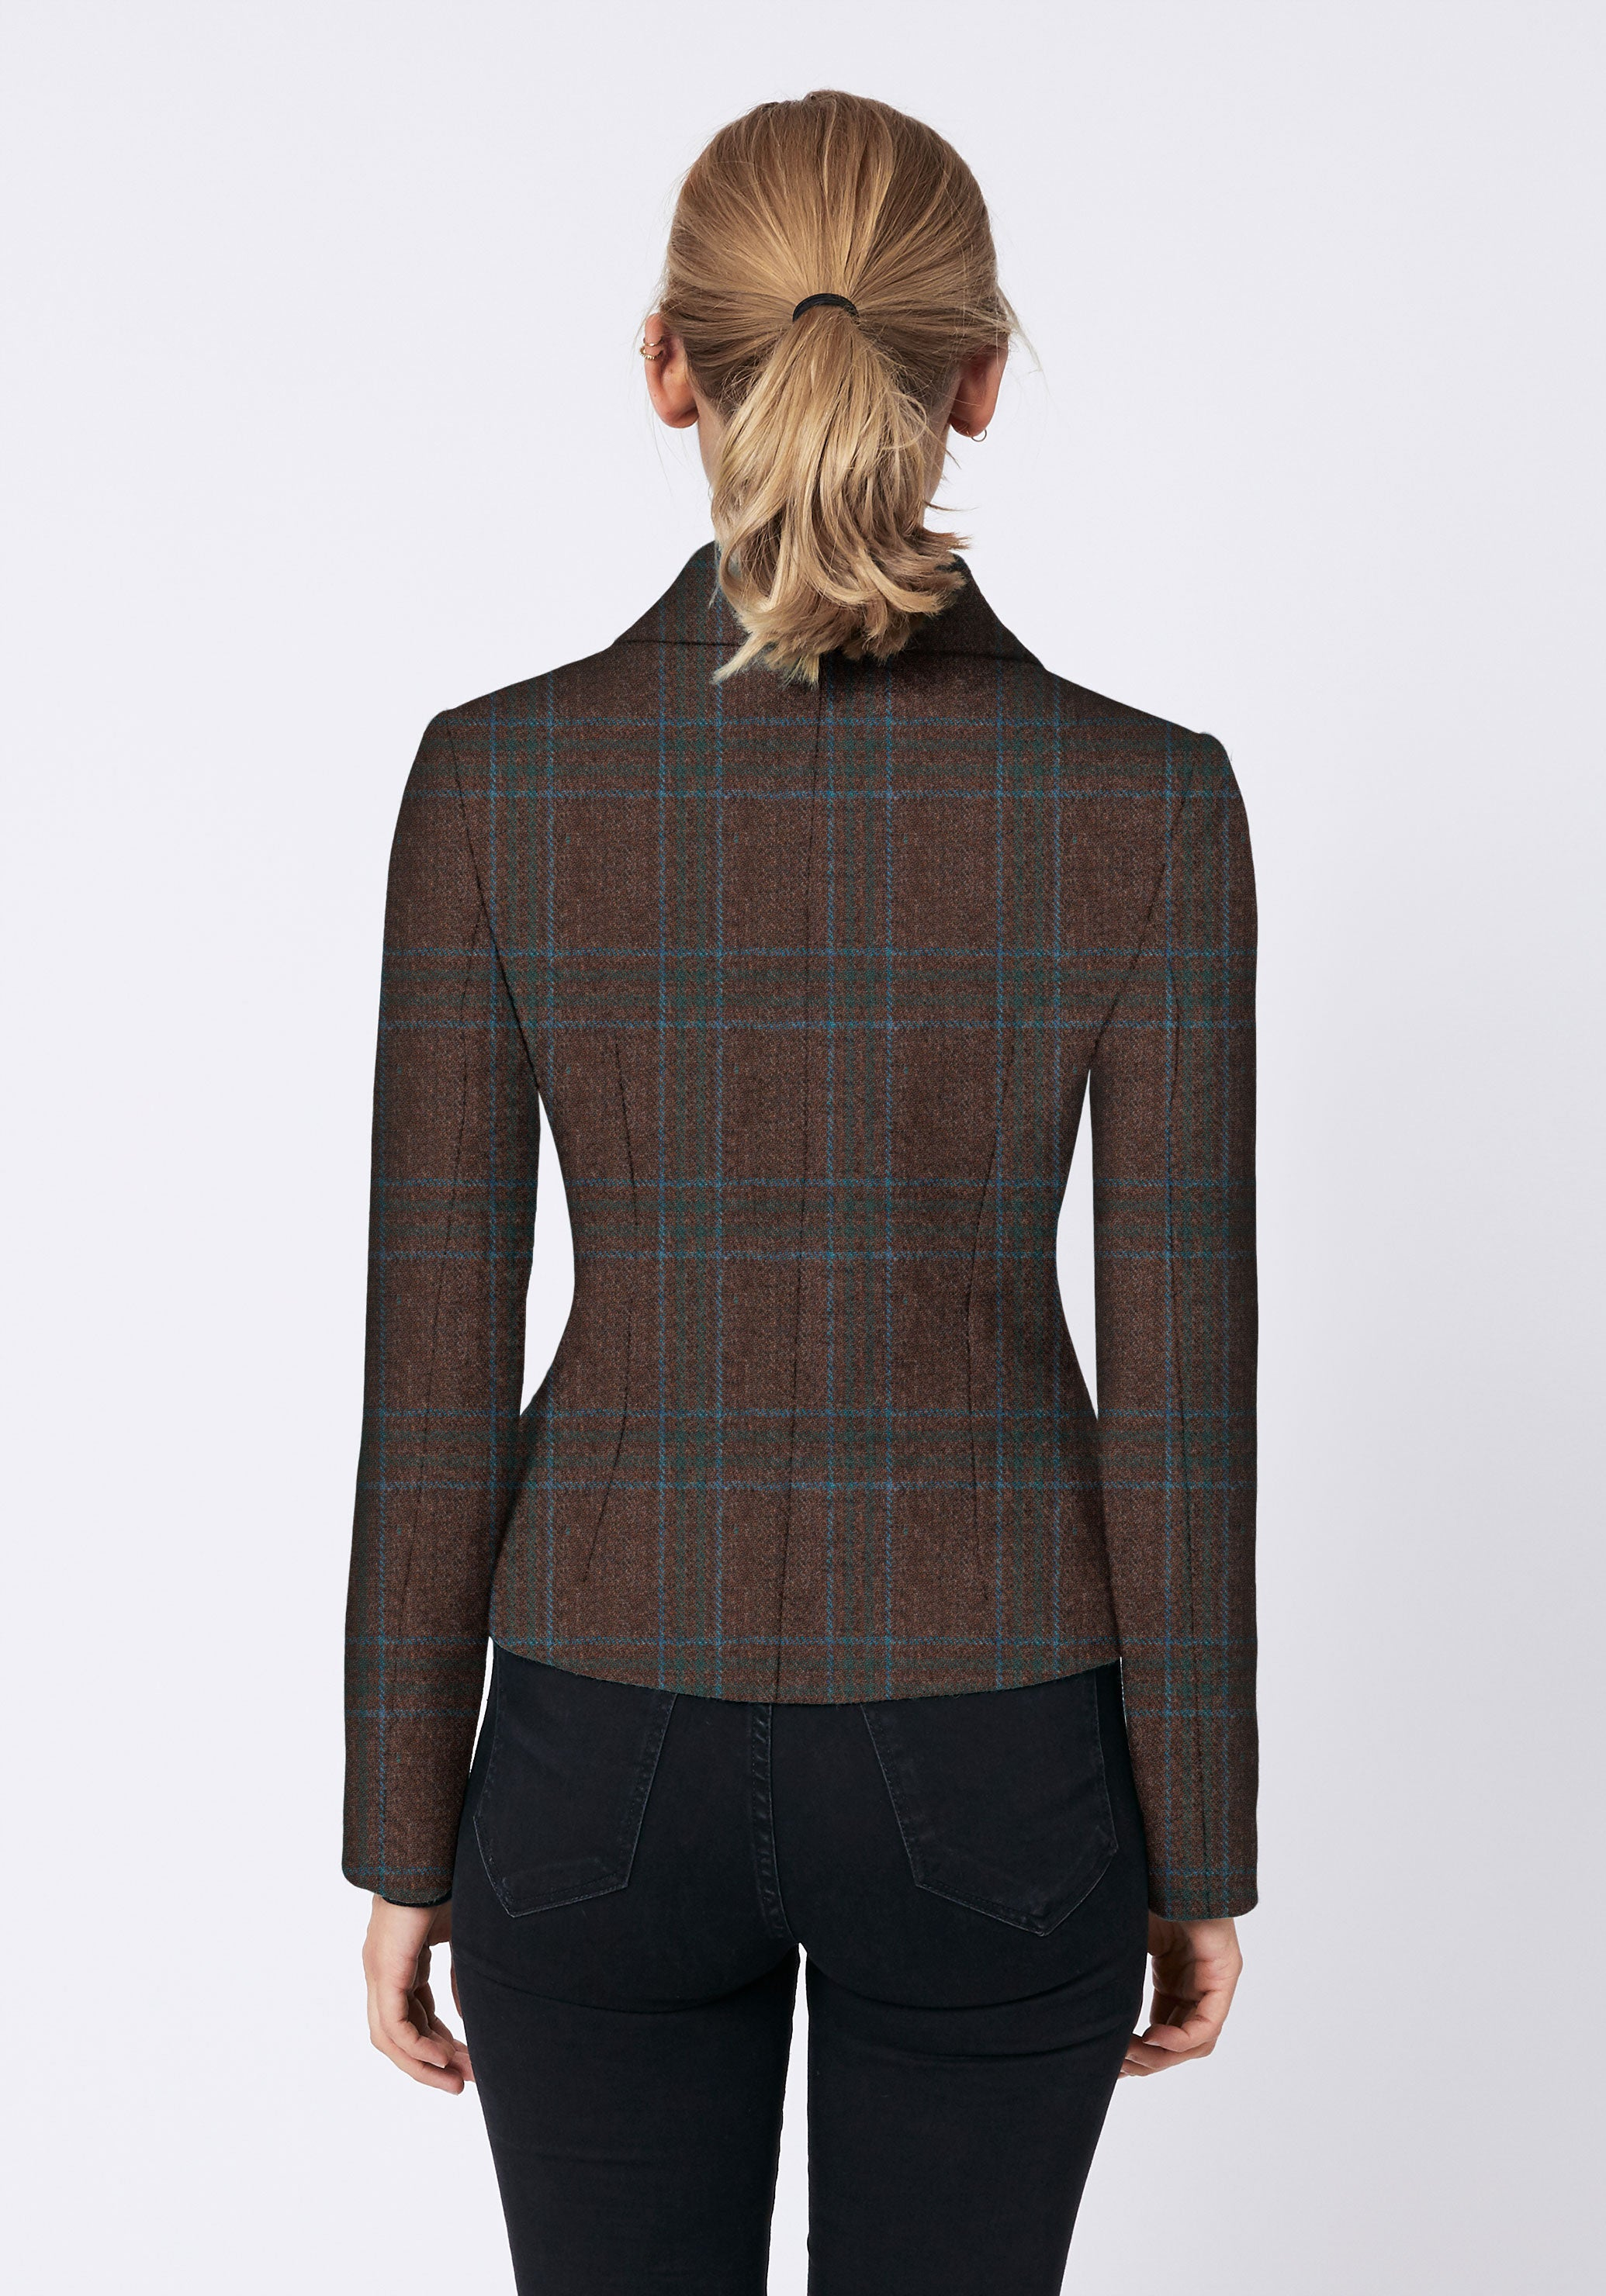 Alexander Jacket in Brown & Turquoise Check